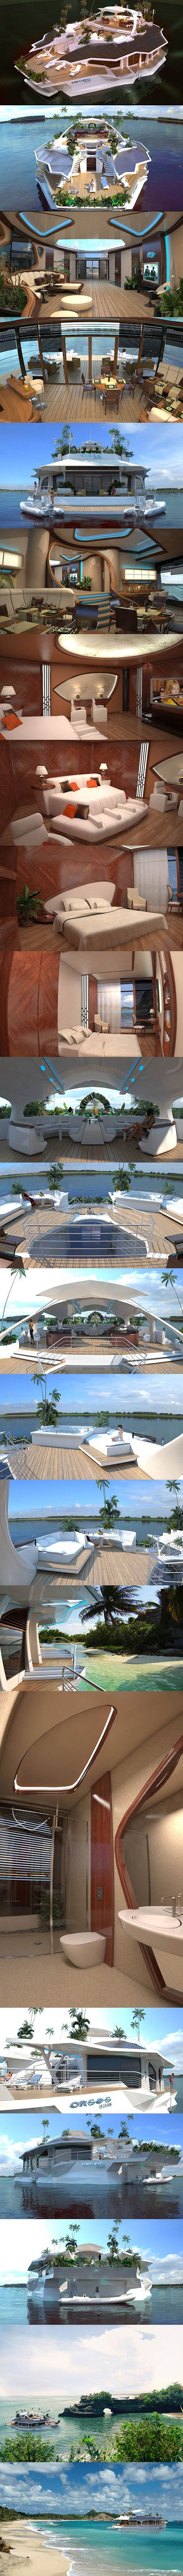 Orsos Islands is a luxury floating island that has the ability to be moved and re-anchored. While it has the vague resemblance of a boat, it's more of a fancy platform than anything. Just amaZING.